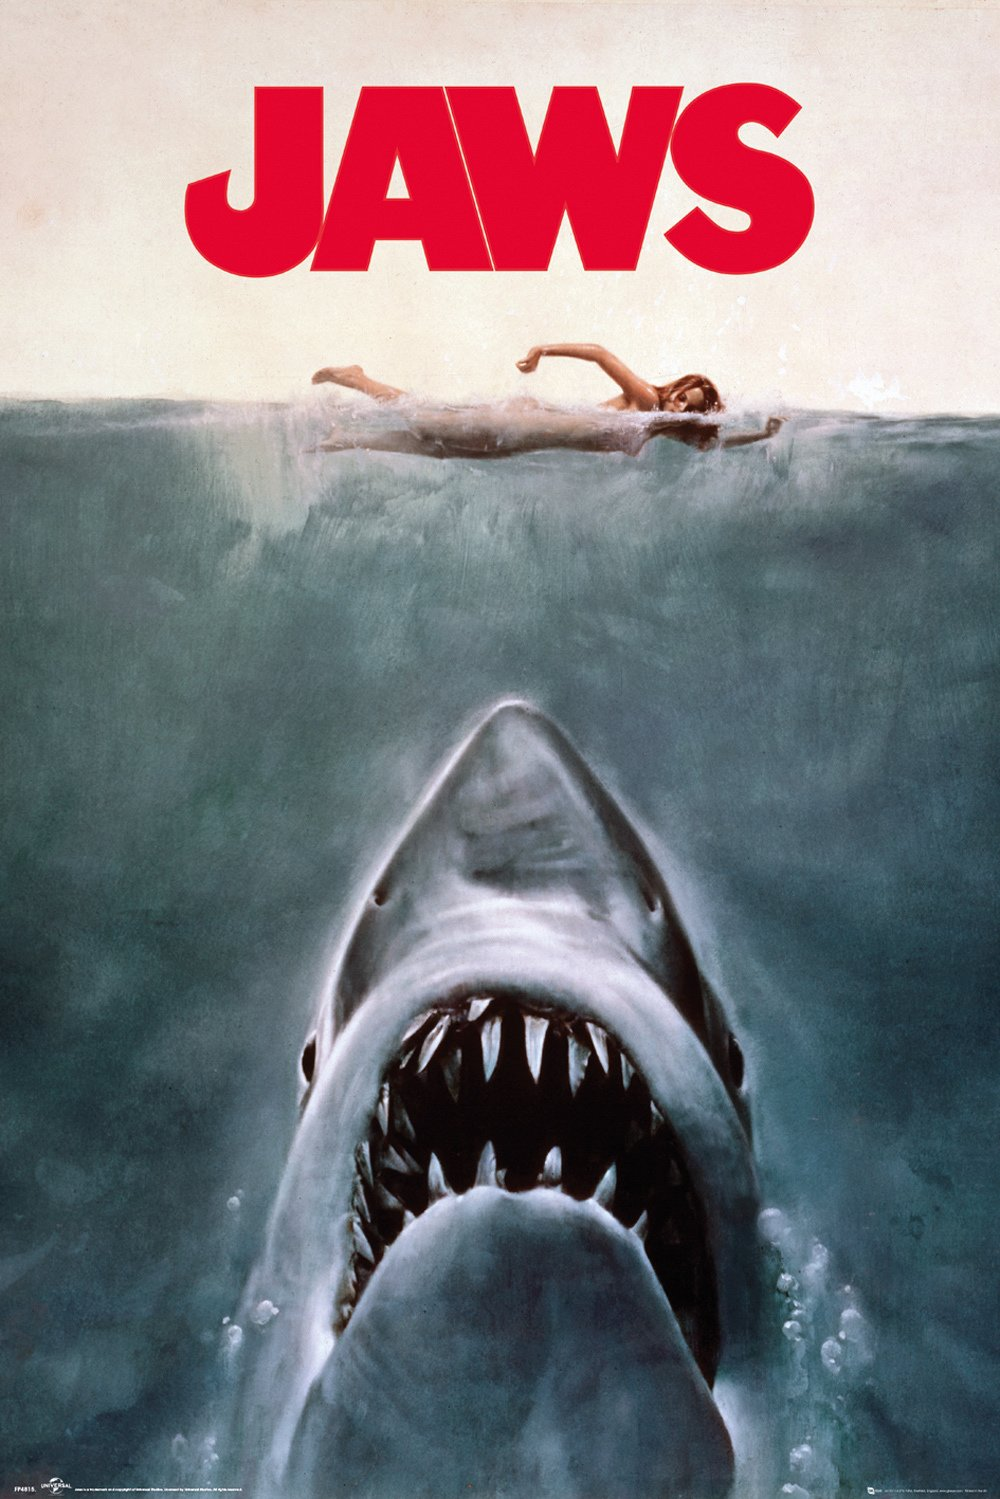 Jaws 1973 Movie Huge wall poster size is 36 inches tall by 24 inches wide